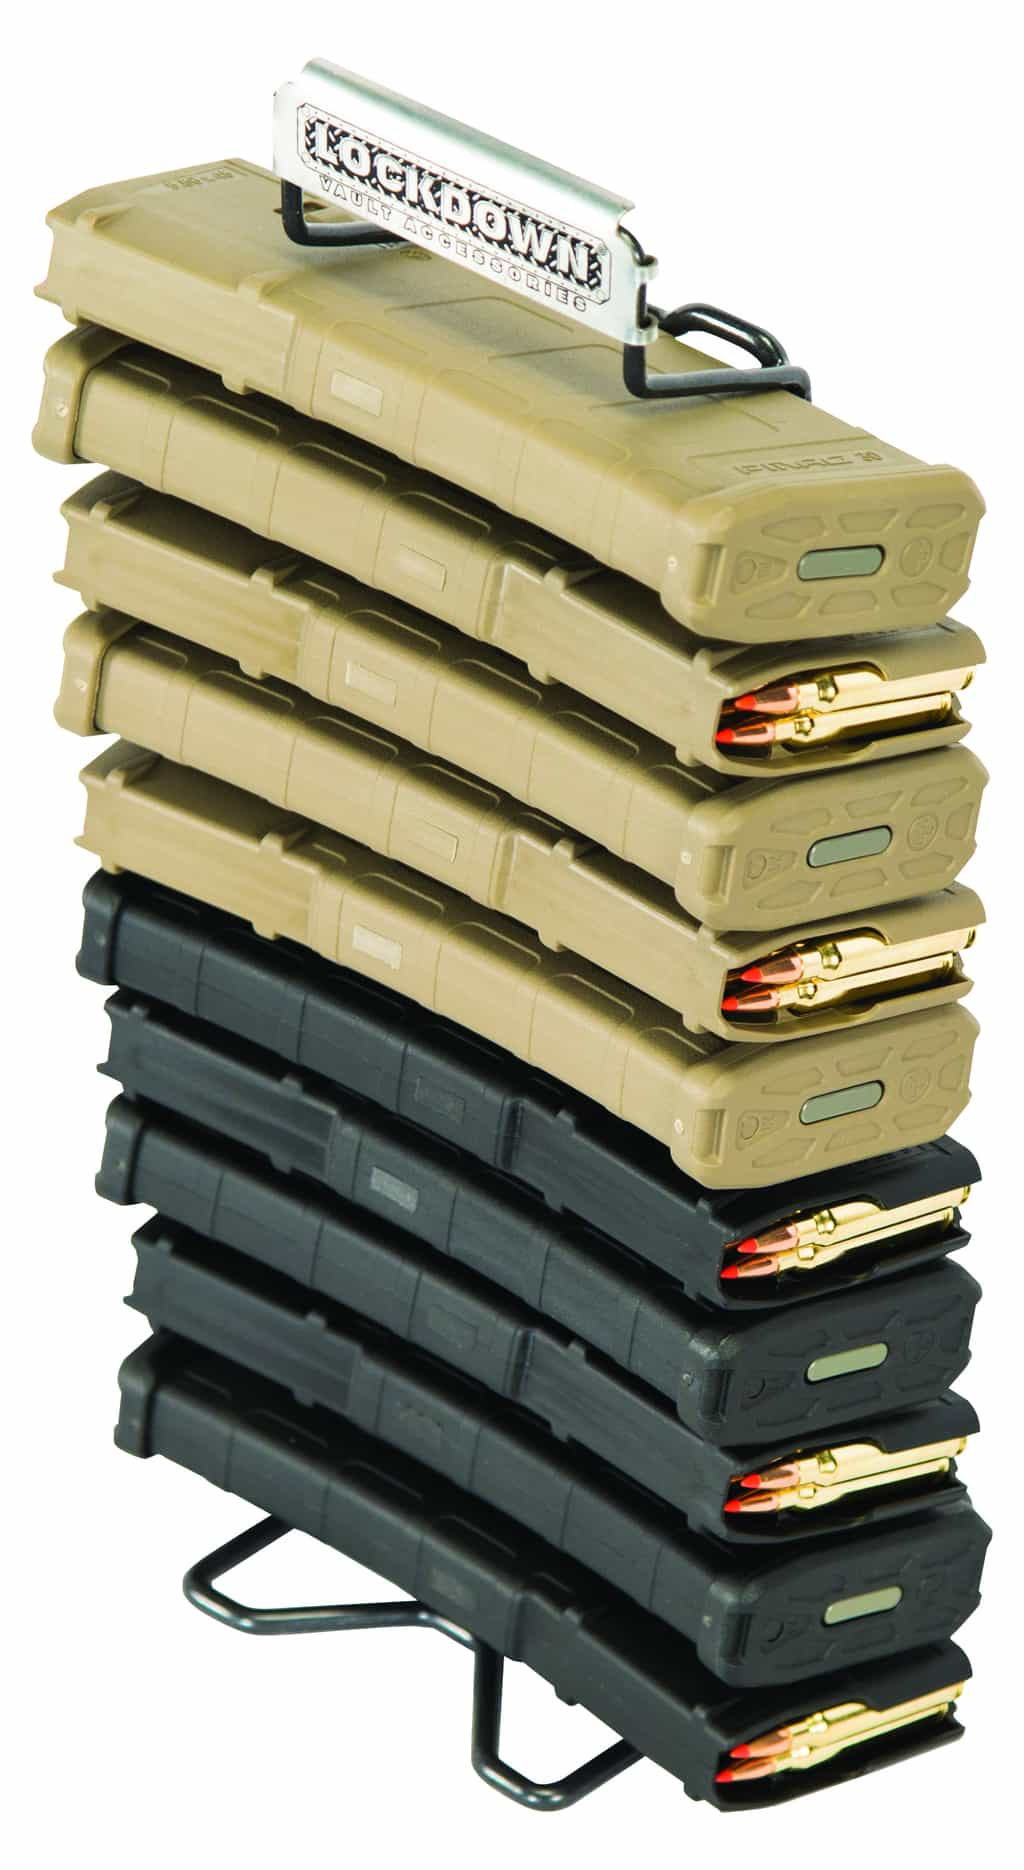 AR-15 Magazine Rack - 222972 Full Mags1